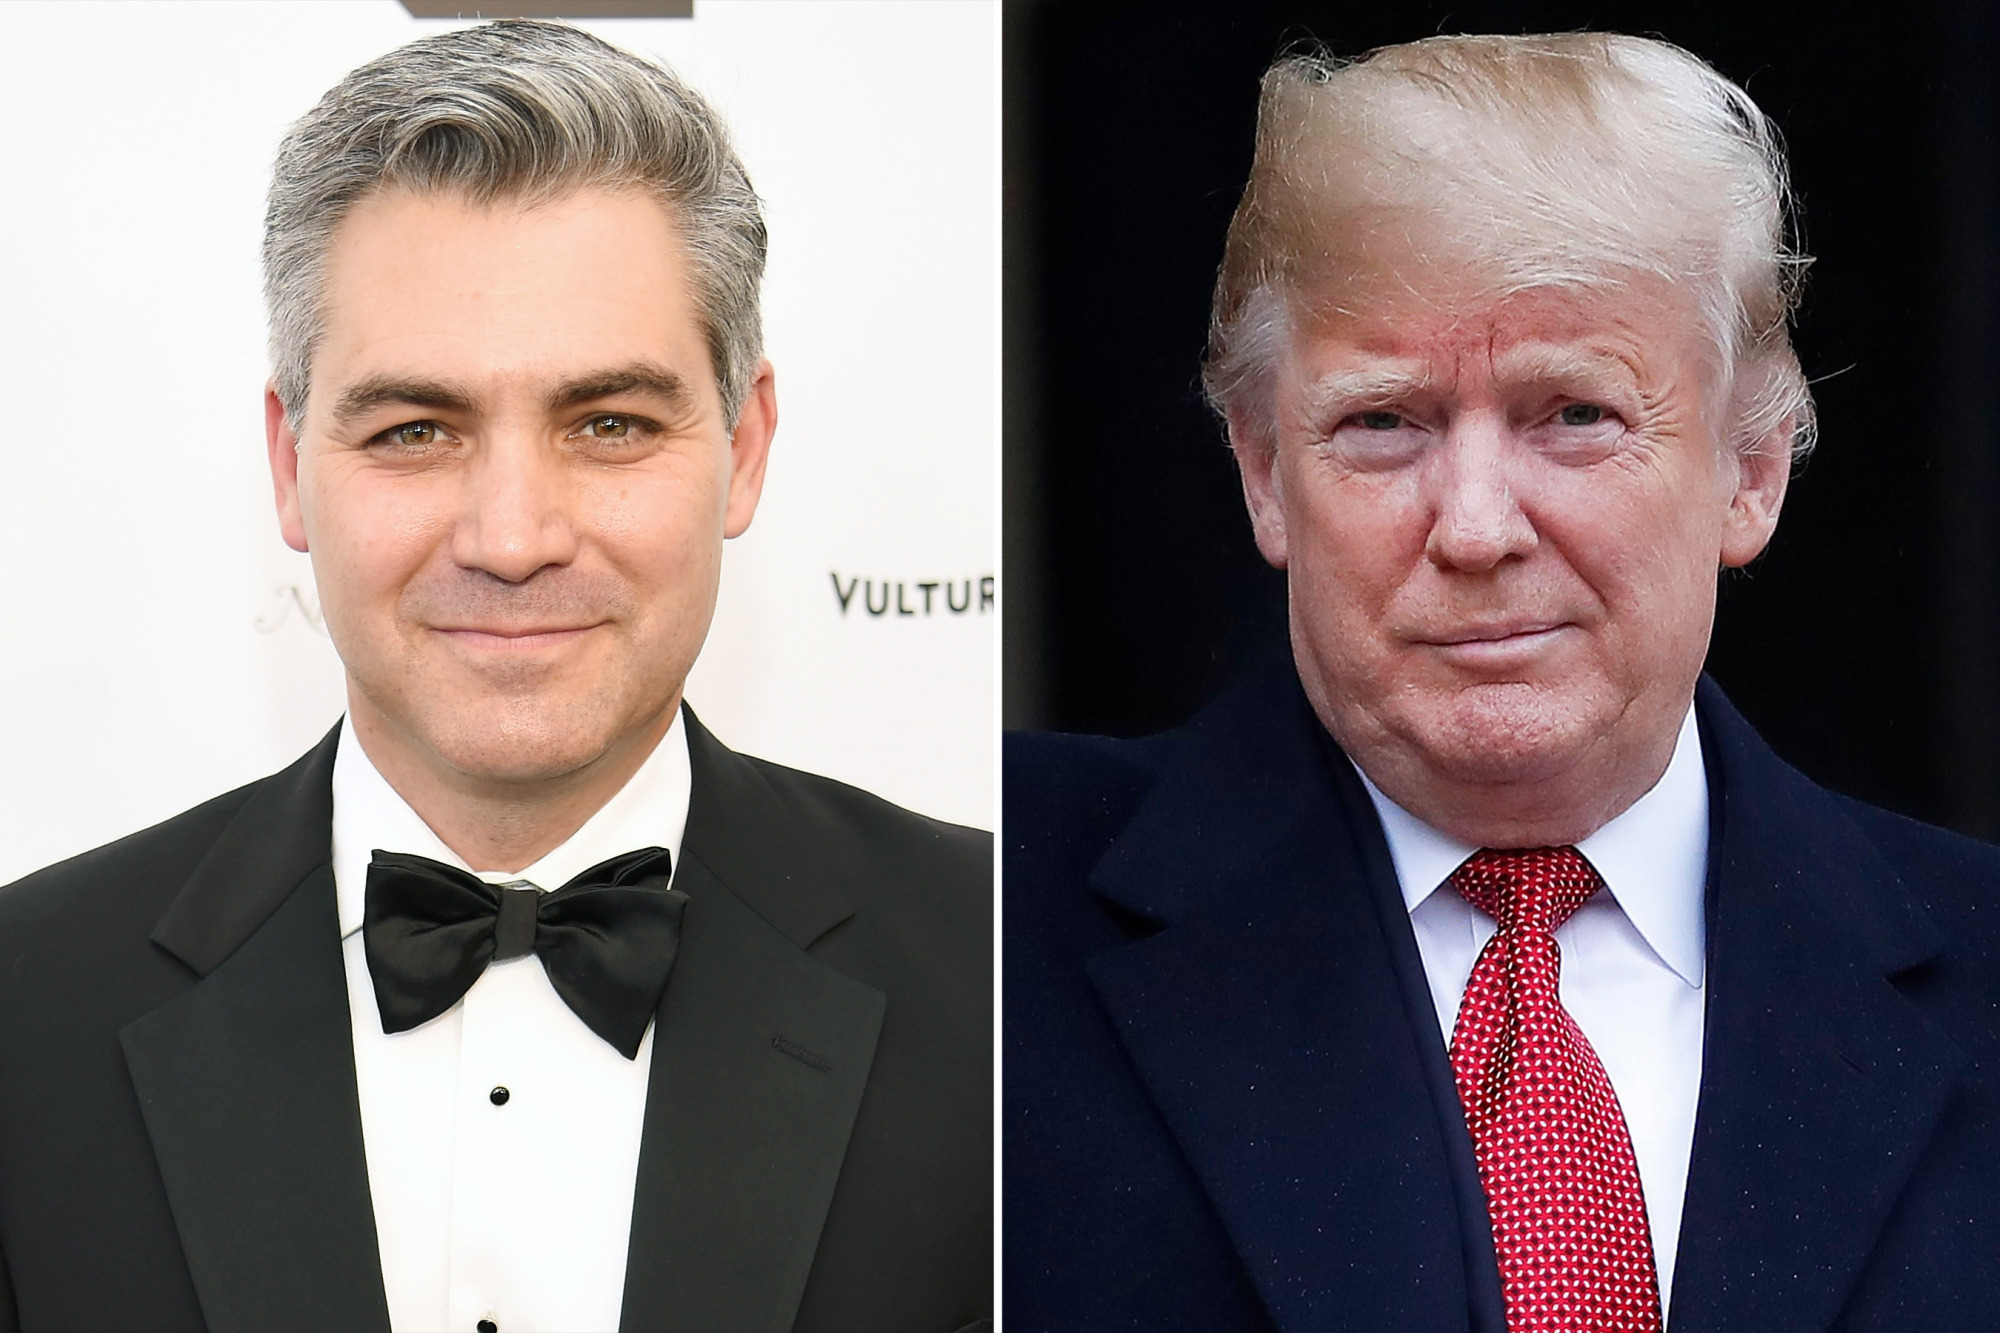 Jim Acosta and President Trump in tuxedos